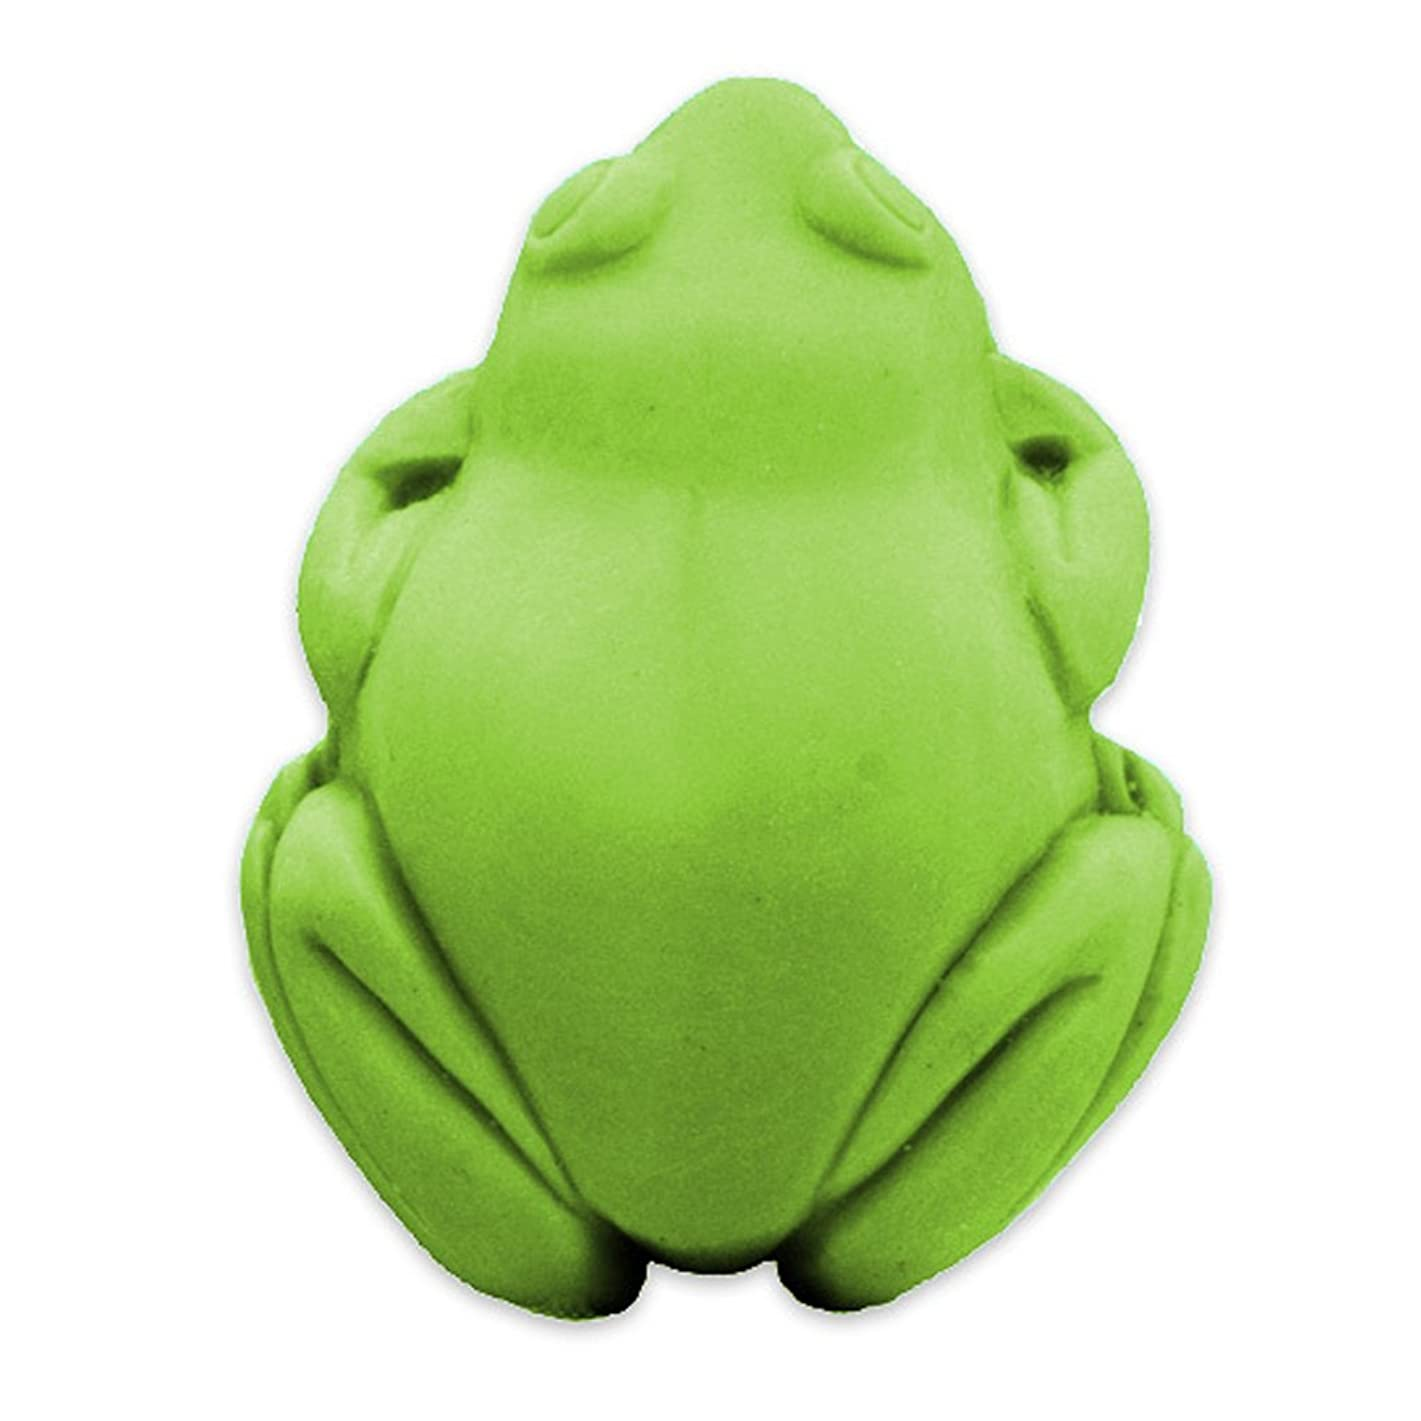 Milky Way Frog Soap Mold - Makes 3.25 oz Bars - Clear PVC - Not Silicone - MW 169